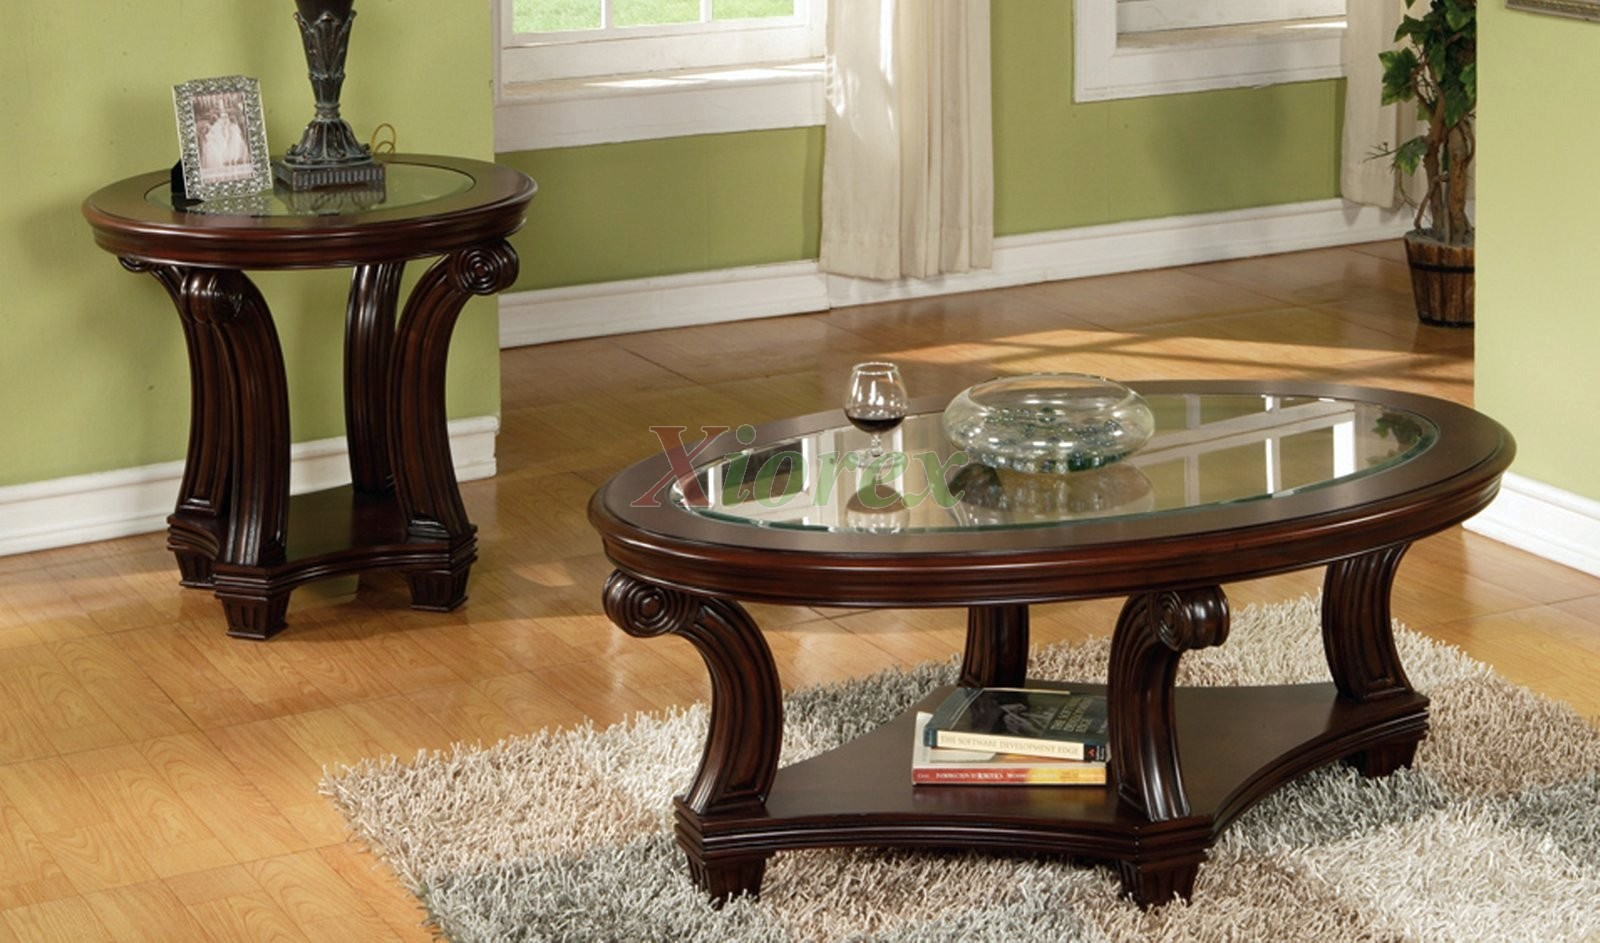 coffee tables ideas living room glass and end stains remodeling flow ceramic interlocking free zoom mats covering cracks dog kennel diy design universal furniture paula deen down